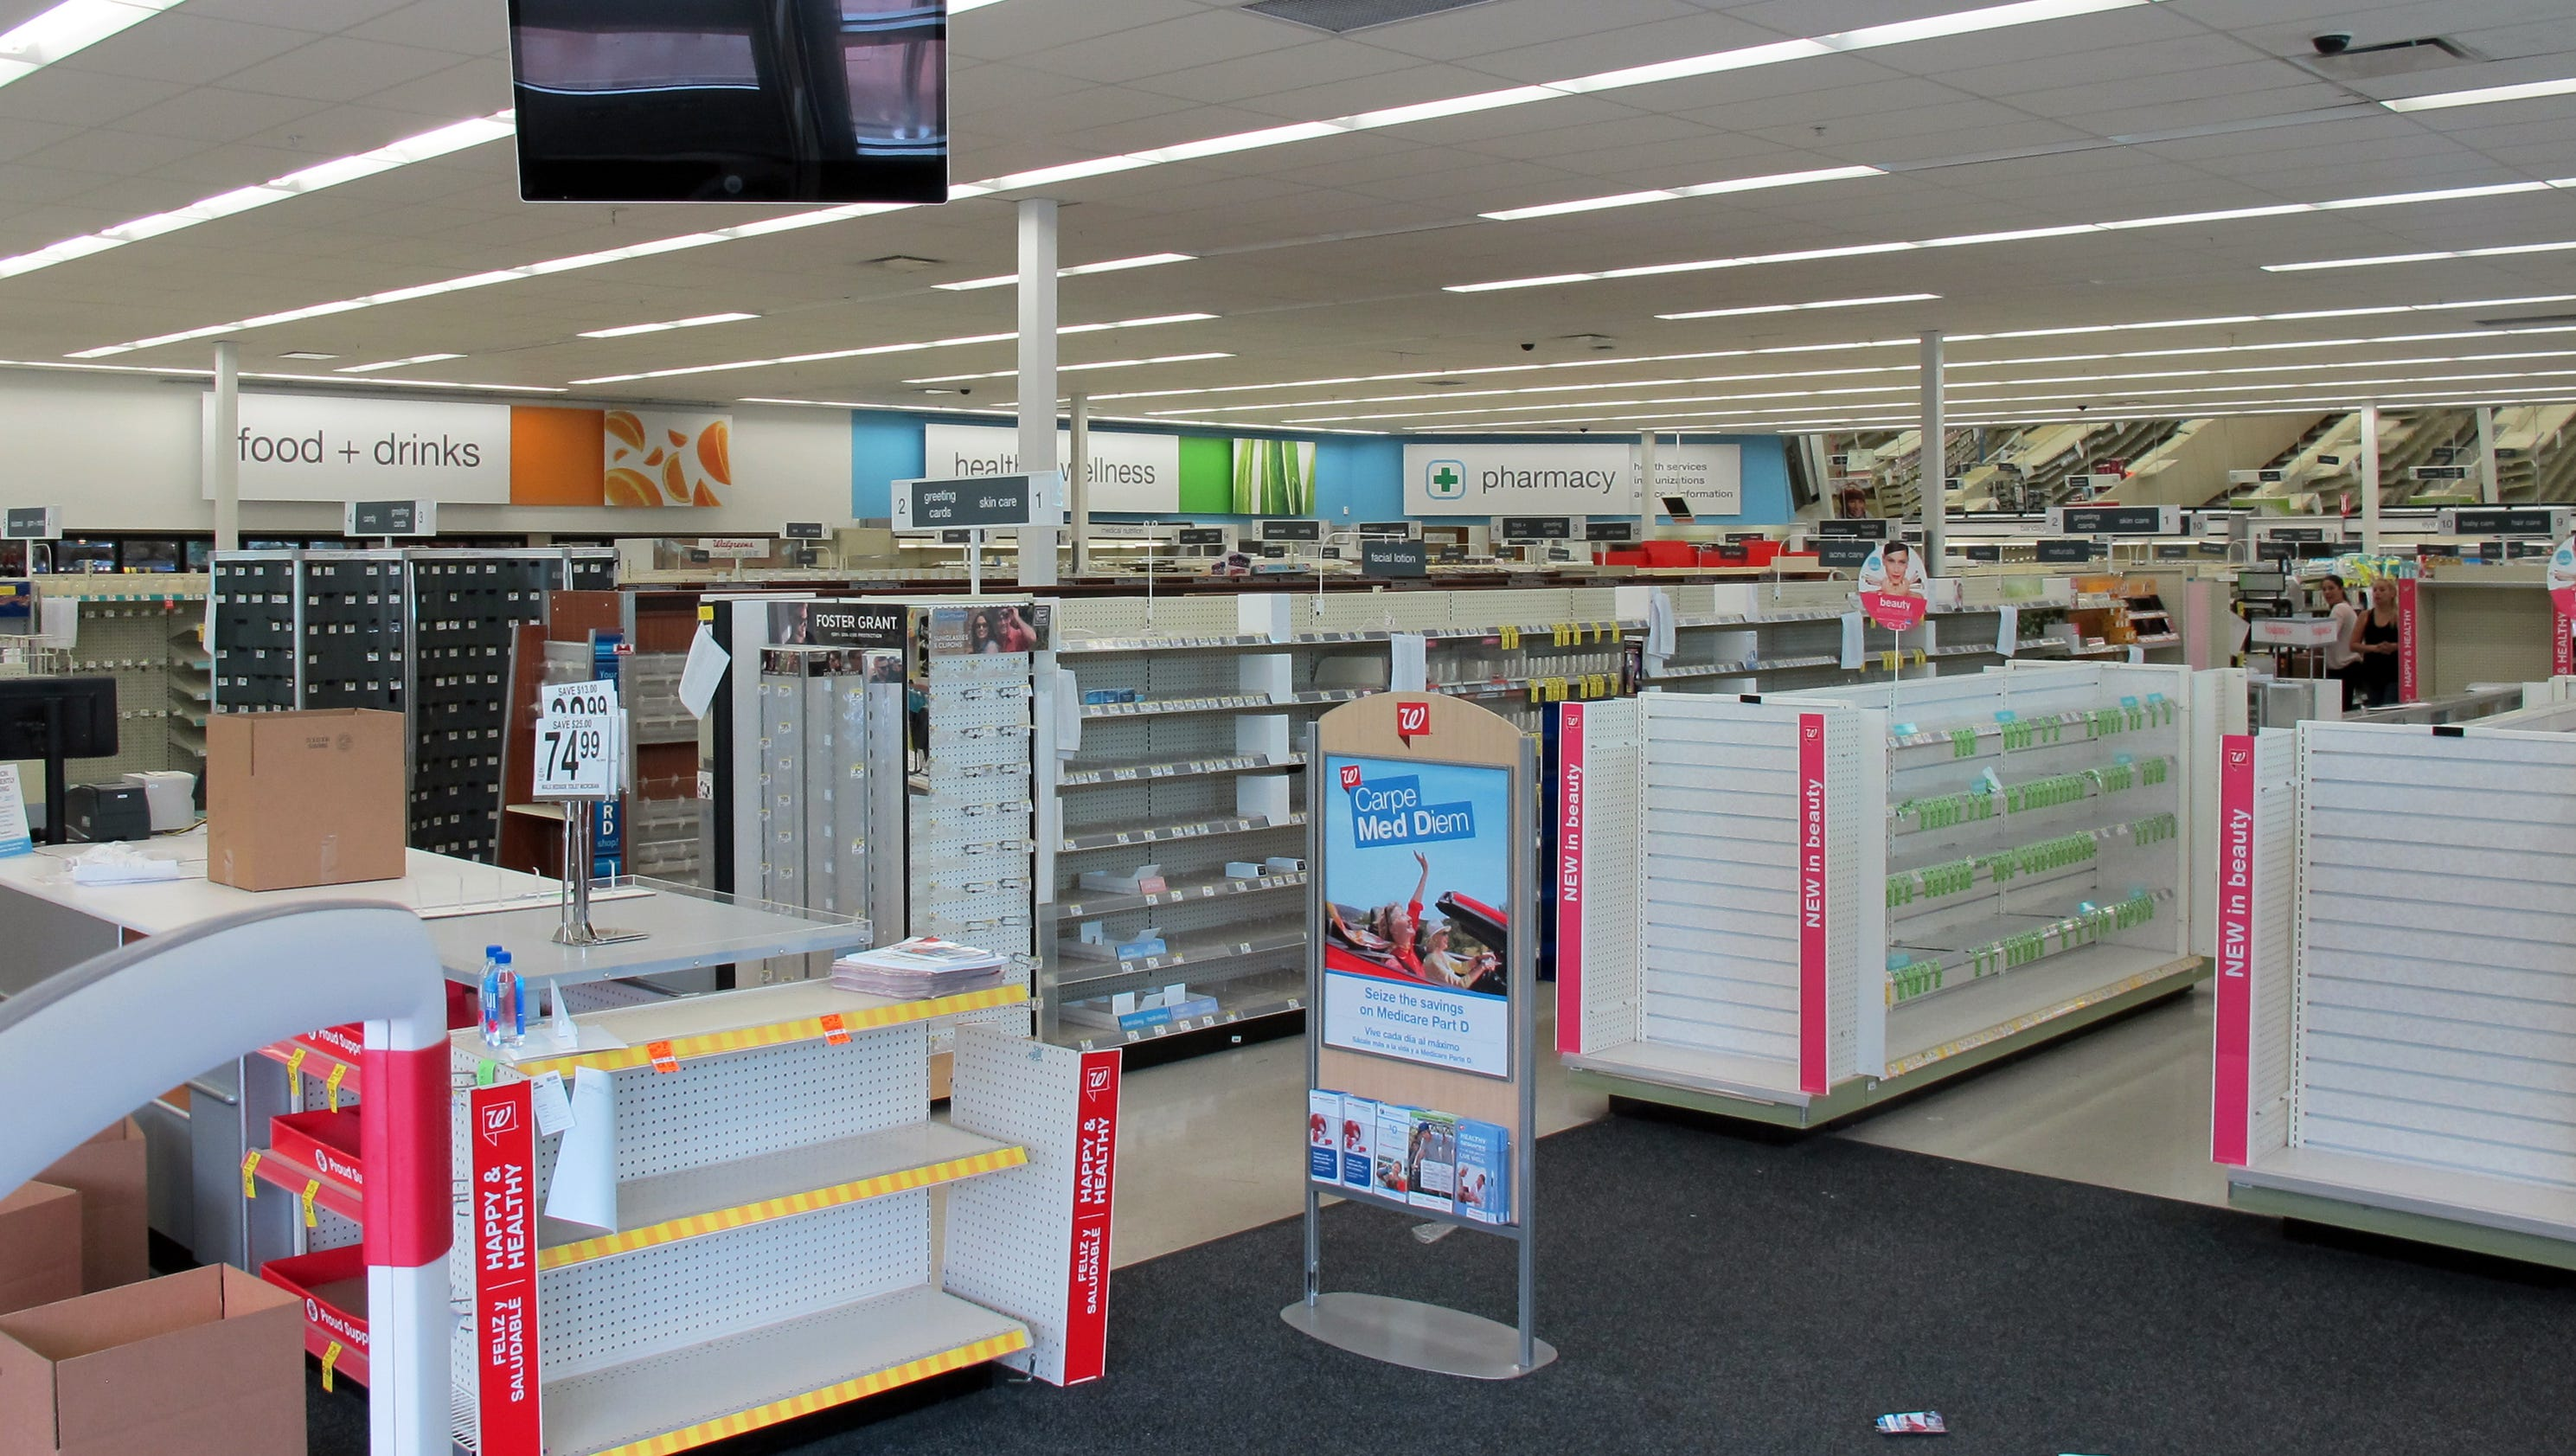 In the know walgreens closes store in naples area kristyandbryce Images